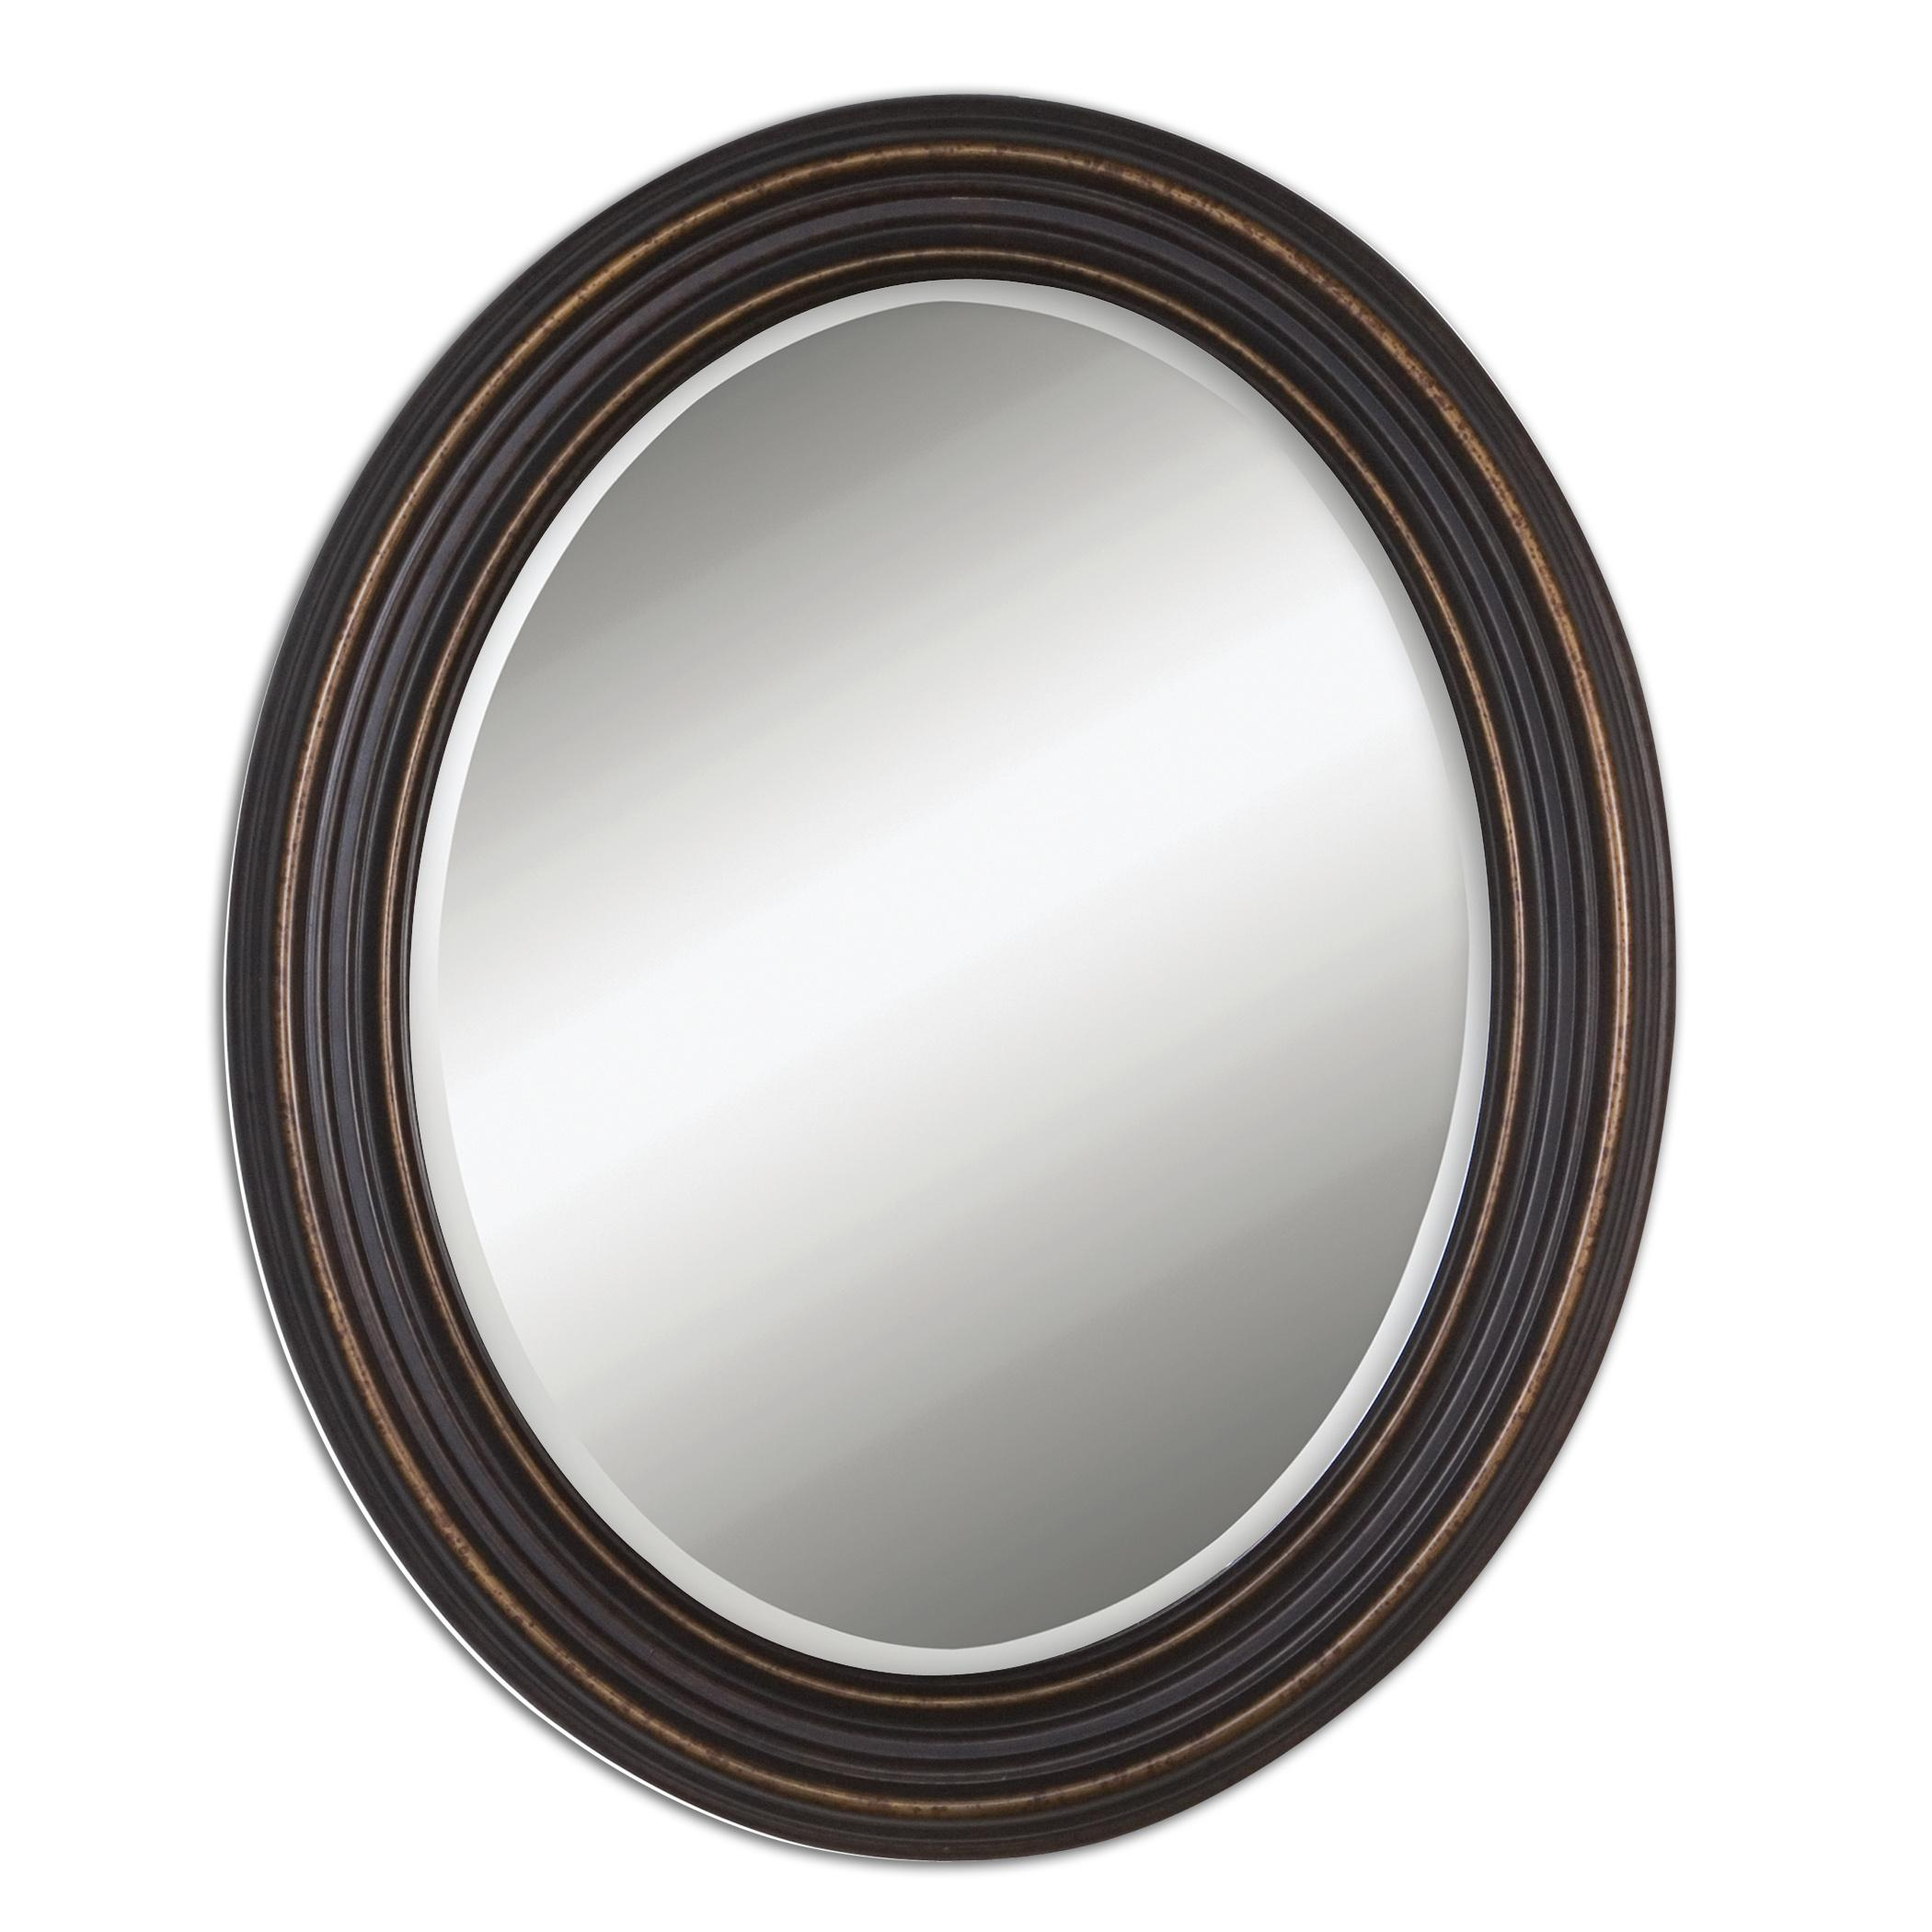 Uttermost Mirrors Ovesca Oval Mirror - Item Number: 14610